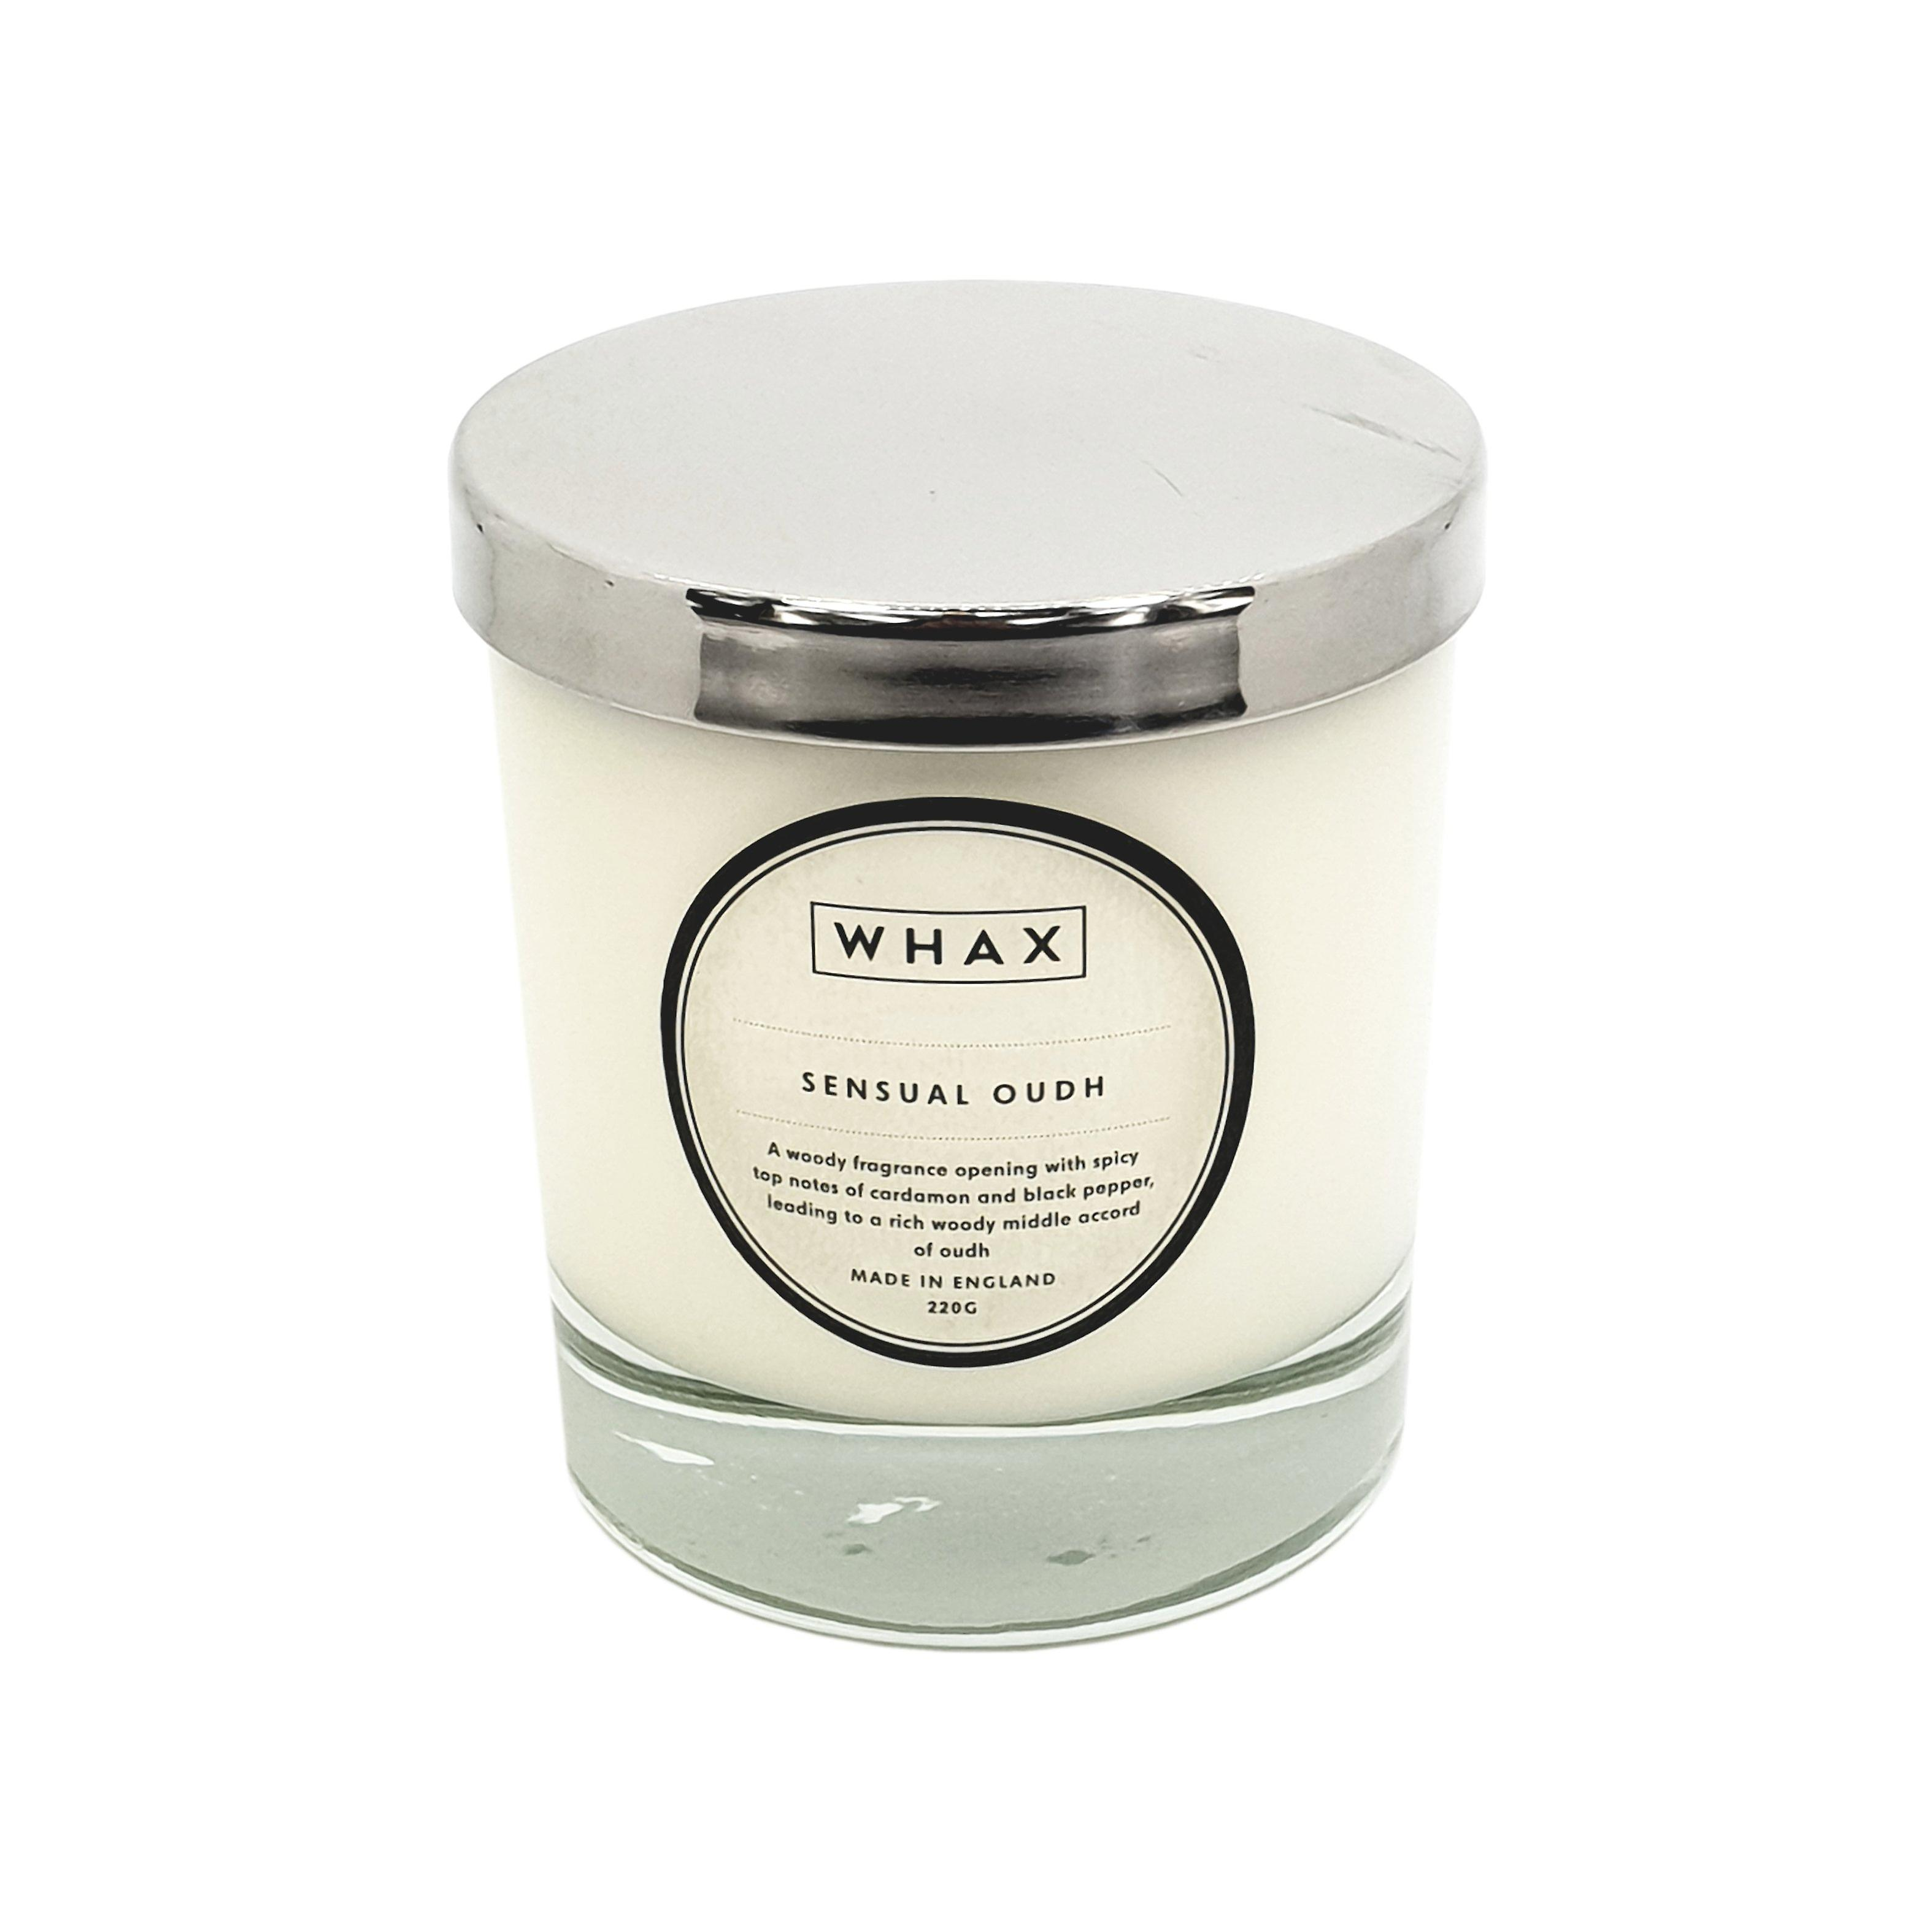 Sensual oudh luxury scented candle